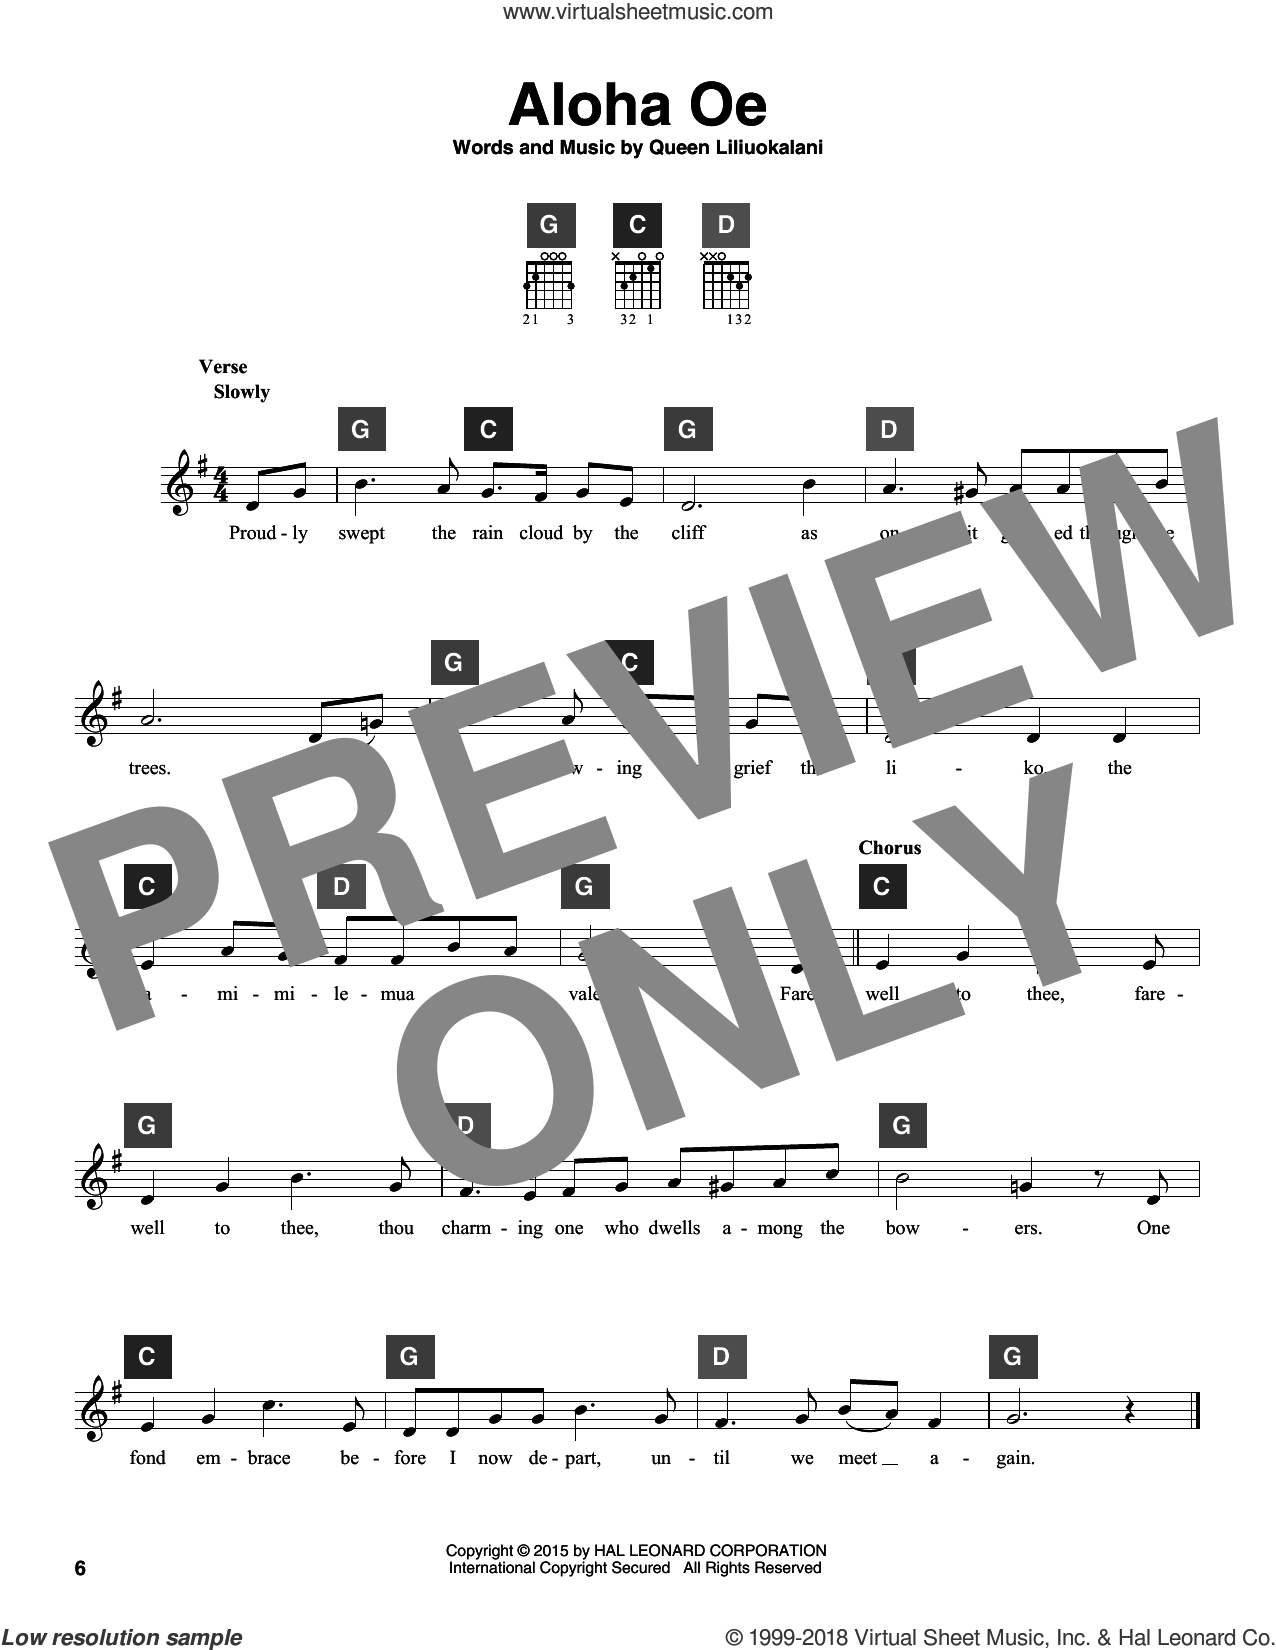 Aloha Oe sheet music for guitar solo (ChordBuddy system) by Queen Liliuokalani. Score Image Preview.